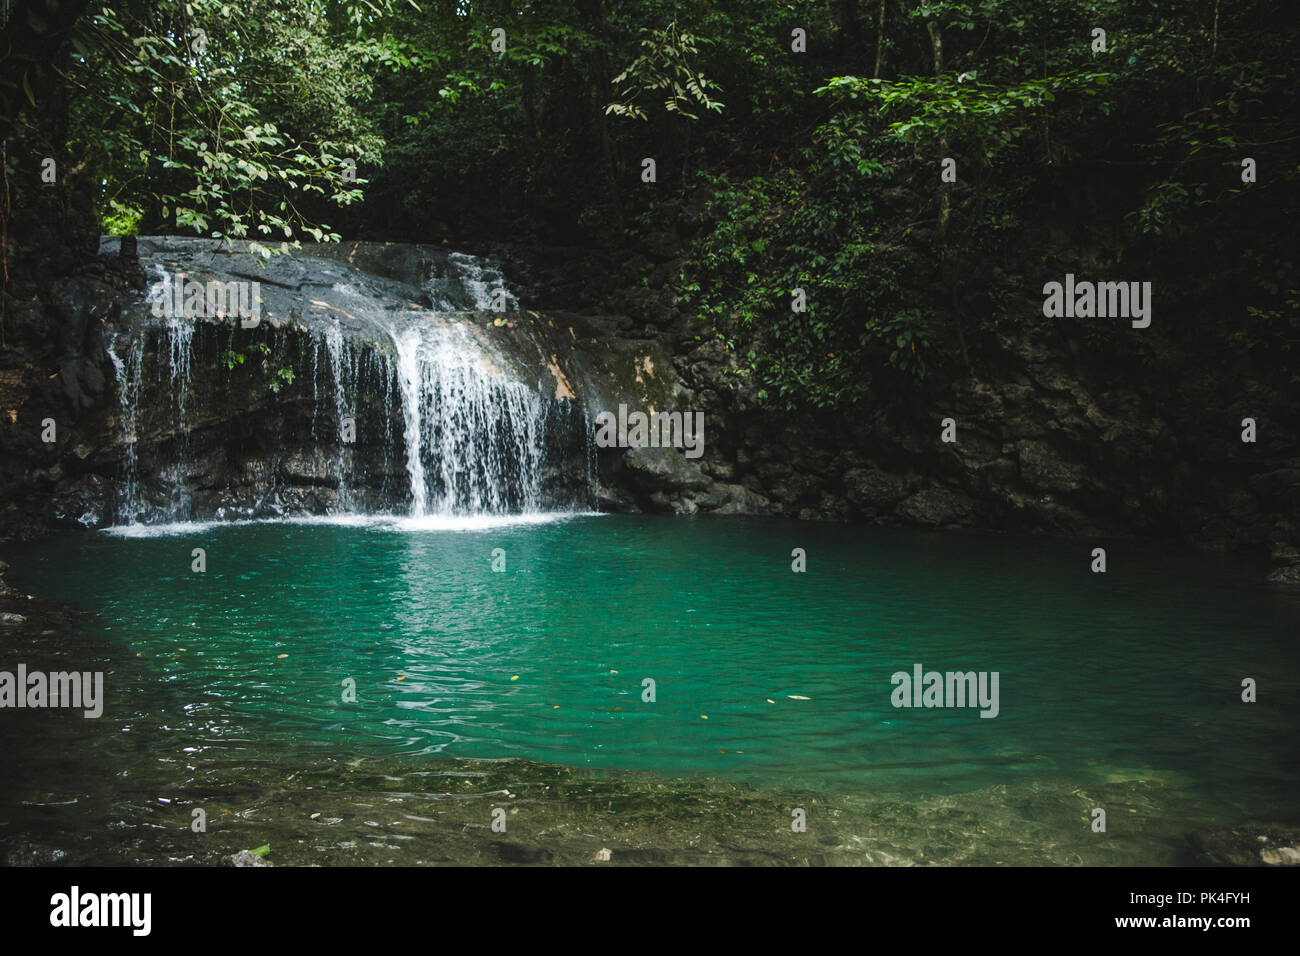 The final natural pool in the Seven Altars (Siete Altares), a tourist attraction in Livingston, Guatemala Stock Photo